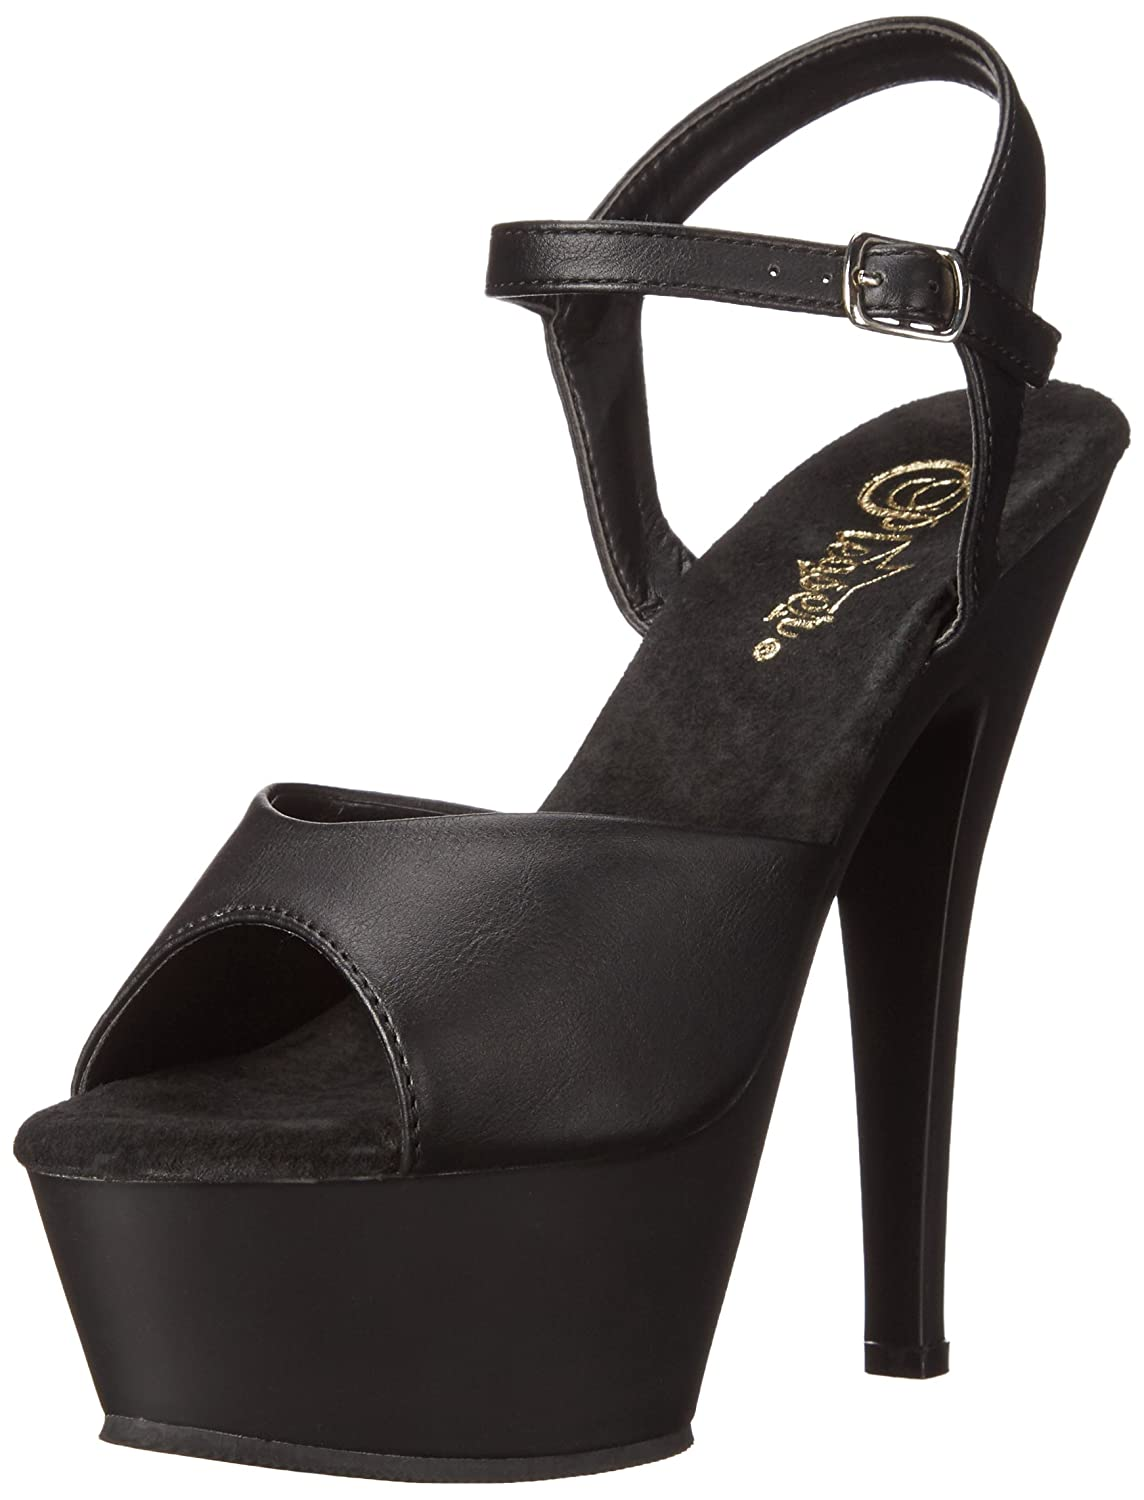 Pleaser Women's KISS209/BPU/M Platform Dress Sandal B00QPTIKUW 9 B(M) US|Black Faux Leather/Black Matte